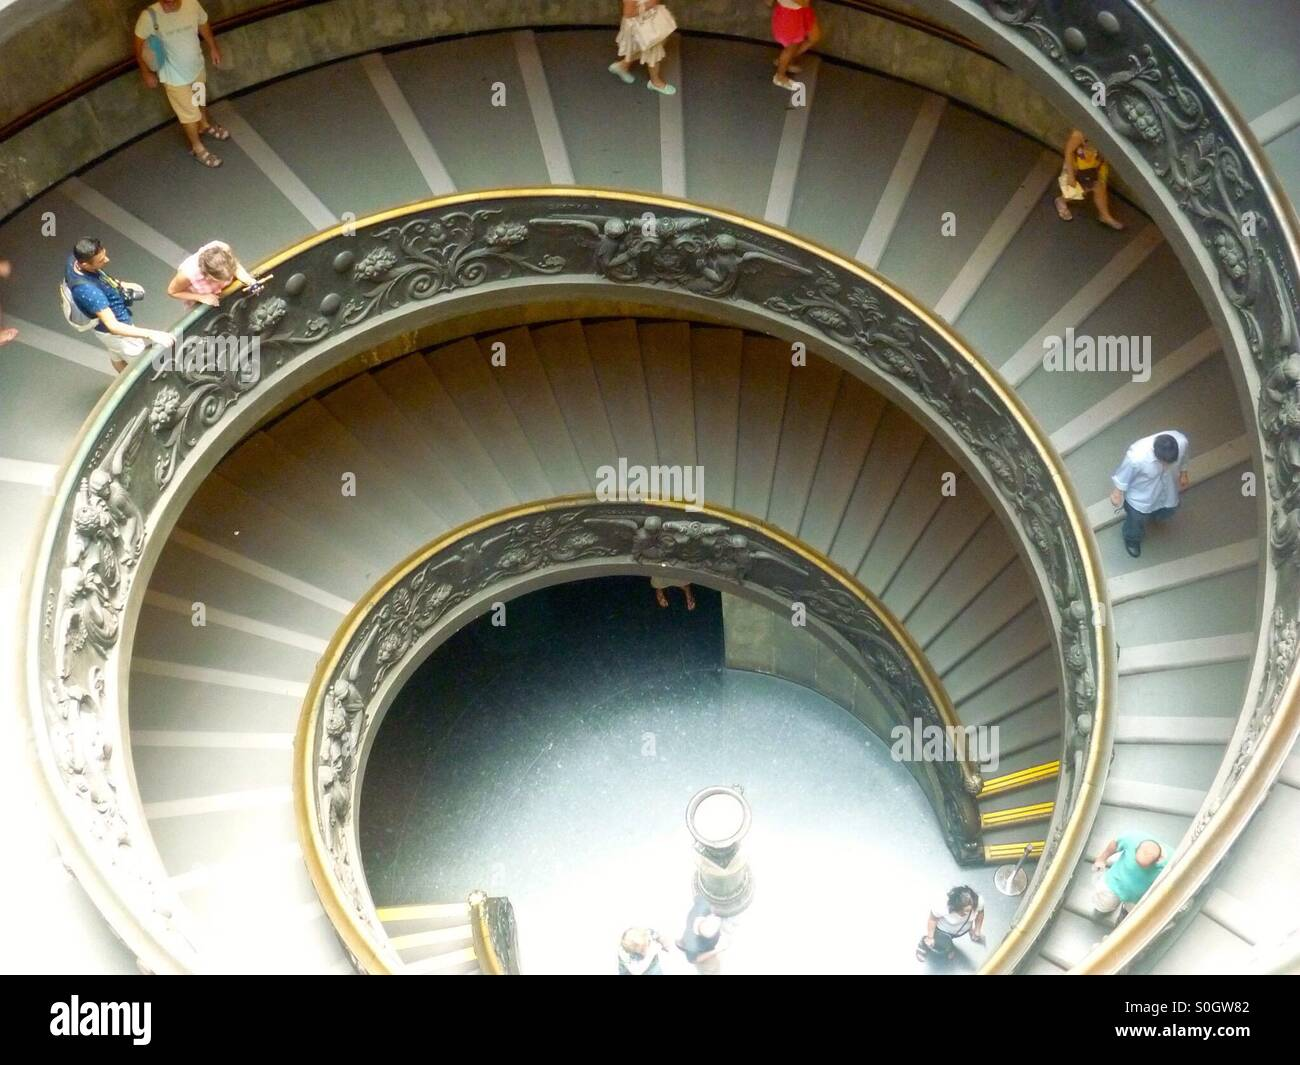 Winding Staircase At The Vatican Museum   Stock Image